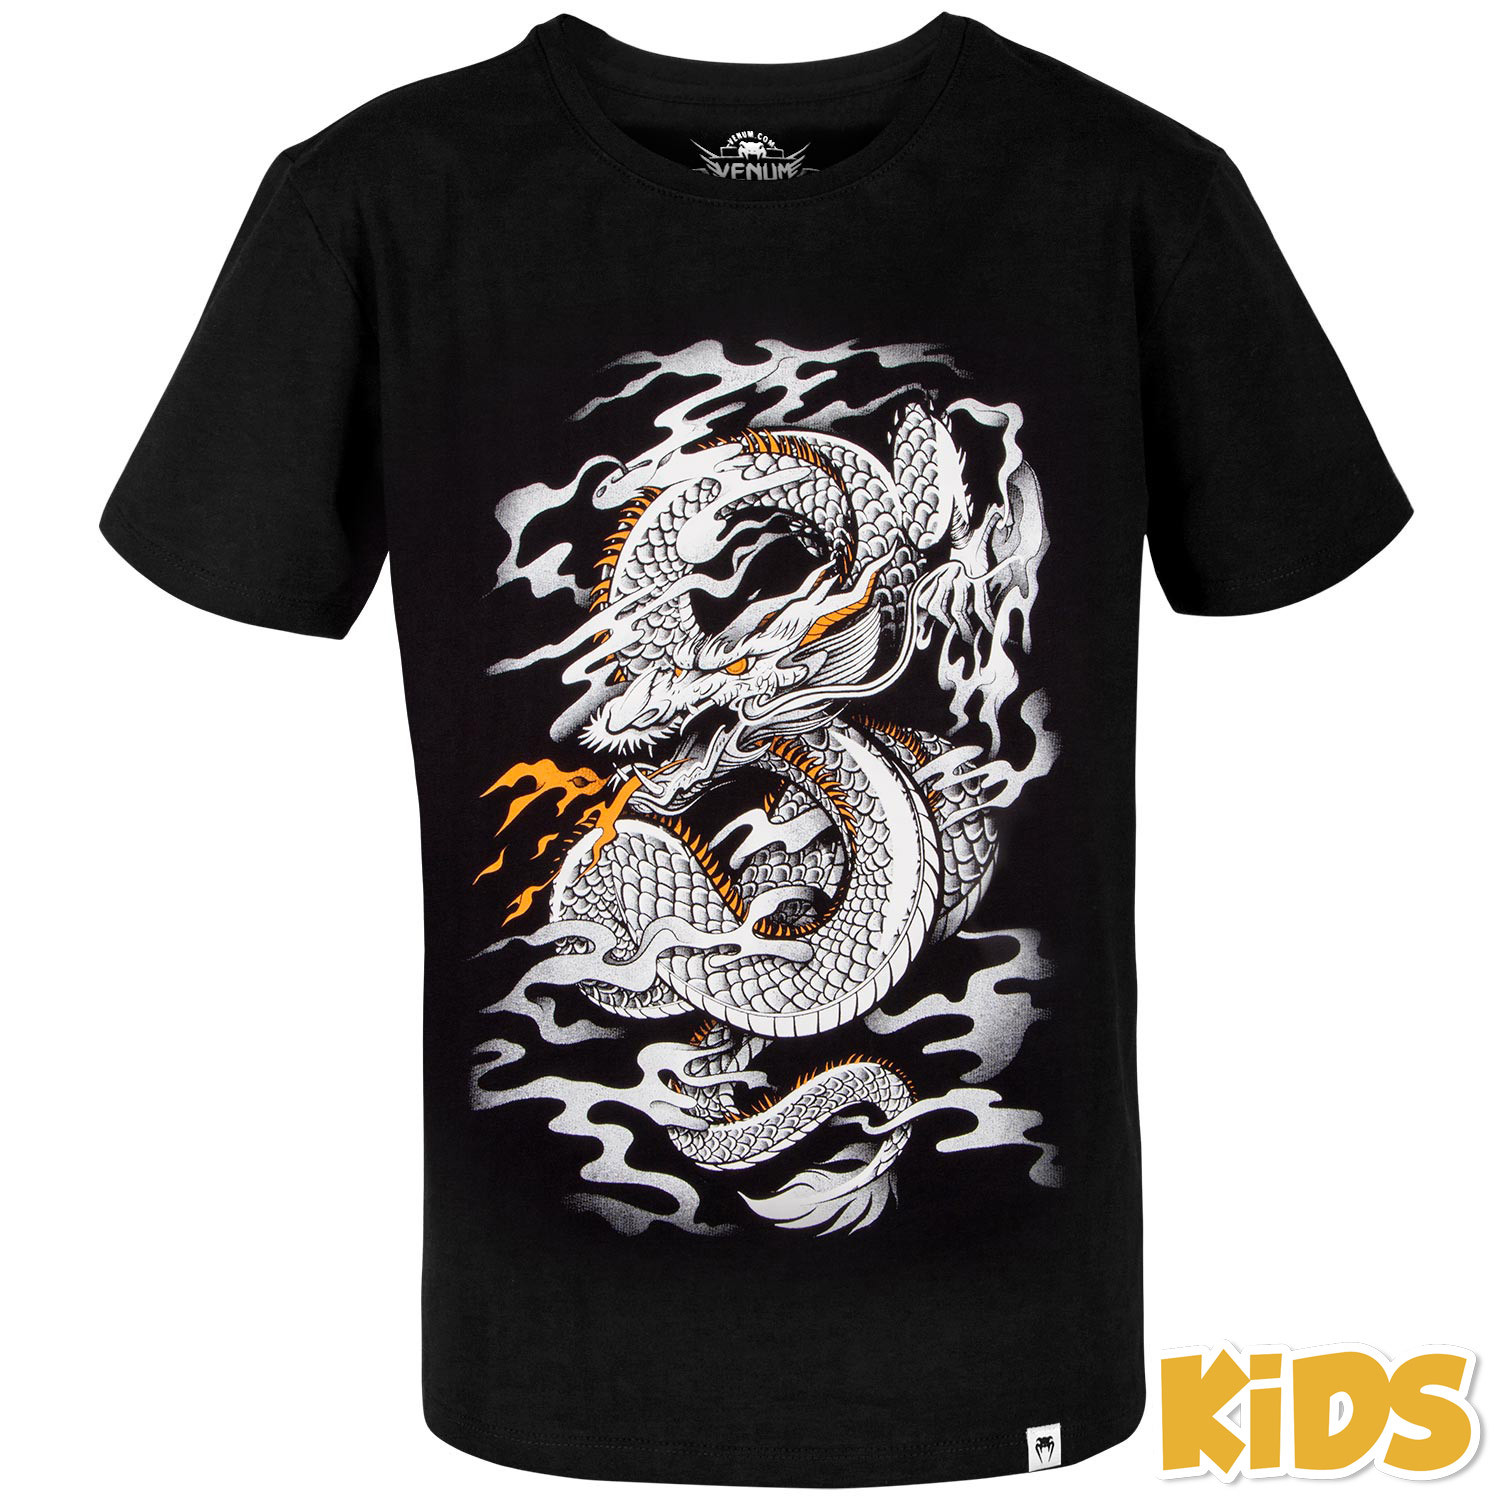 Купить Футболка детская Venum Dragon's Flight Kids T-shirt - Black/White, 5615_bk_wh